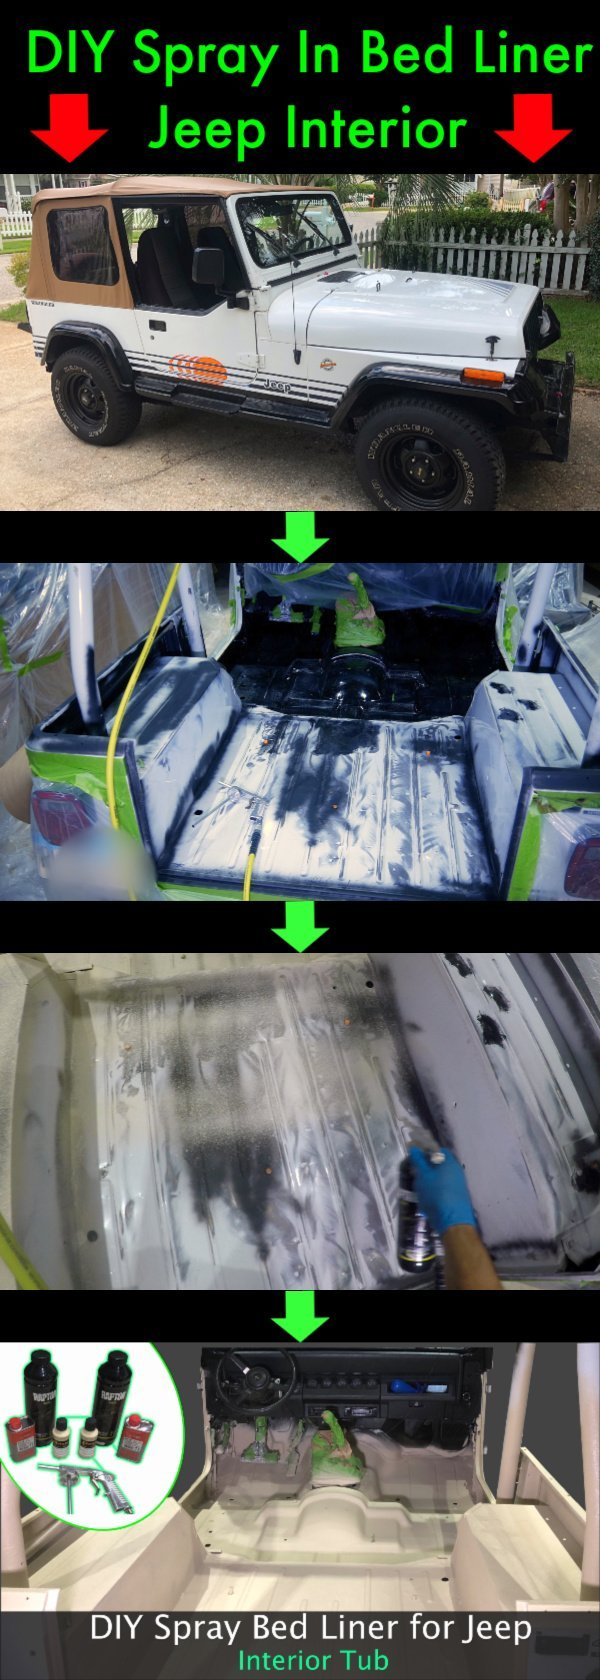 In this DIY spray in bed liner tutorial, I show you how to spray bed liner in Jeep Wrangler interior tub. My 1992 Jeep Wrangler YJ Islander interior tub started to rust, so I sprayed the Raptor Liner Tintable Bed Liner Kit.  I also show you how to remove rust, reinforce the interior floor, replace Jeep interior bolts, and replace Jeep Interior carpet with a more durable floor that is visually appealing and easy to clean.